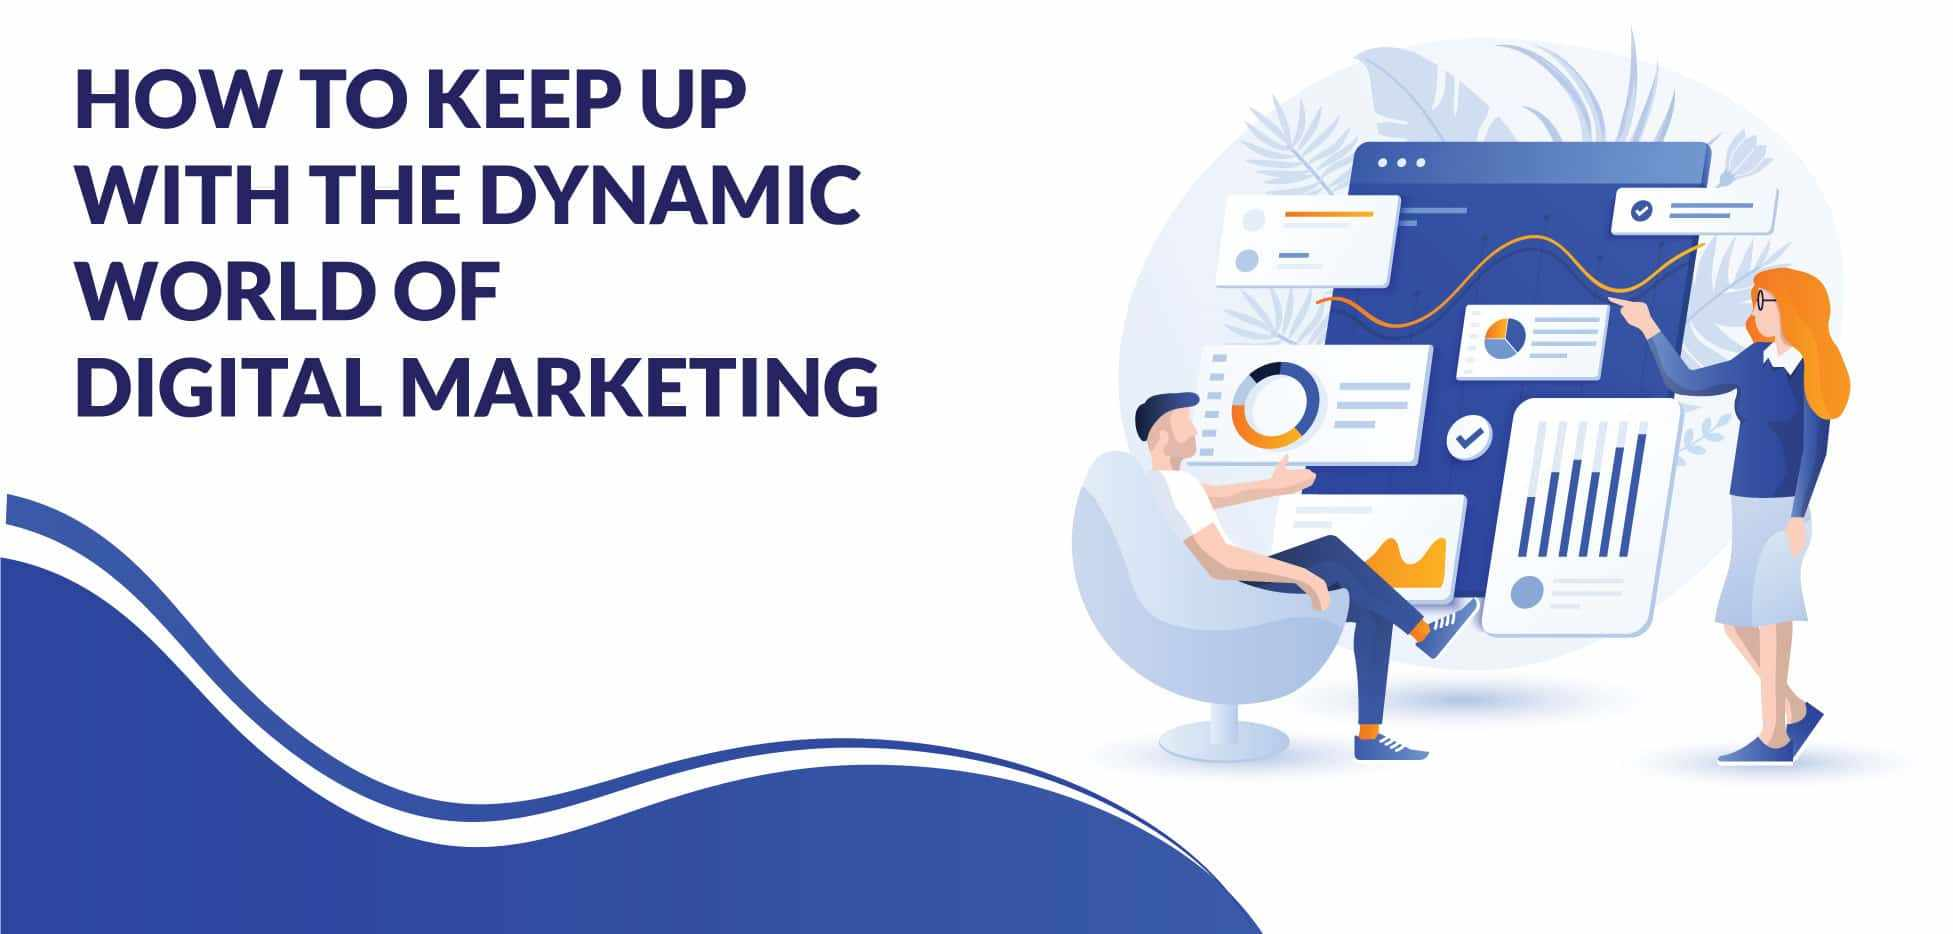 How to Keep up With the Dynamic World of Digital Marketing_Vrootok